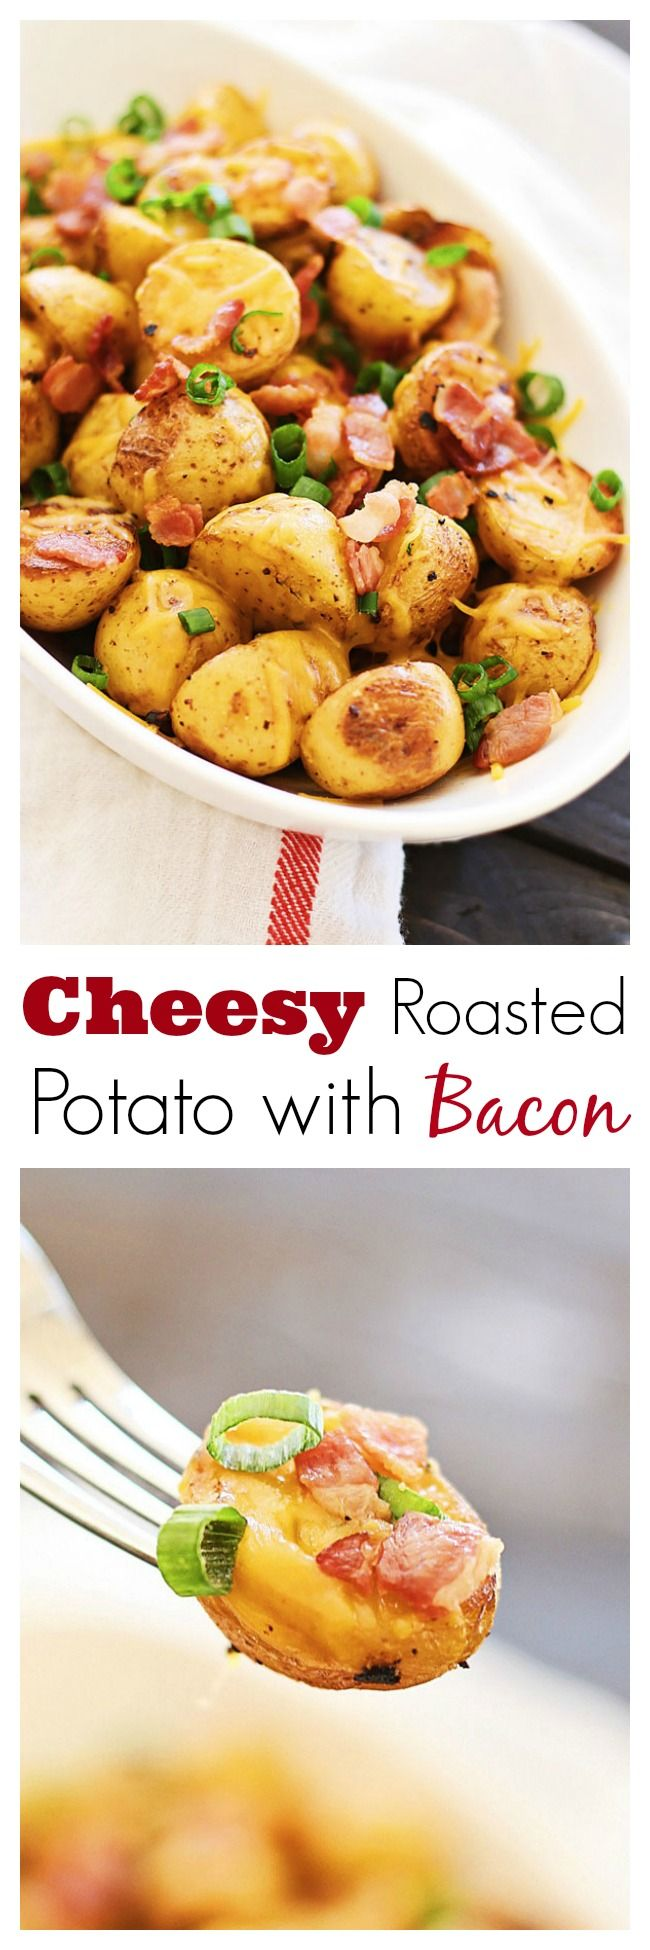 Cheesy Roasted Potatoes with Bacon – mini golden potatoes roasted with garlic, cheddar cheese and bacon. An amazing side dish for Thanksgiving   rasamalaysia.com